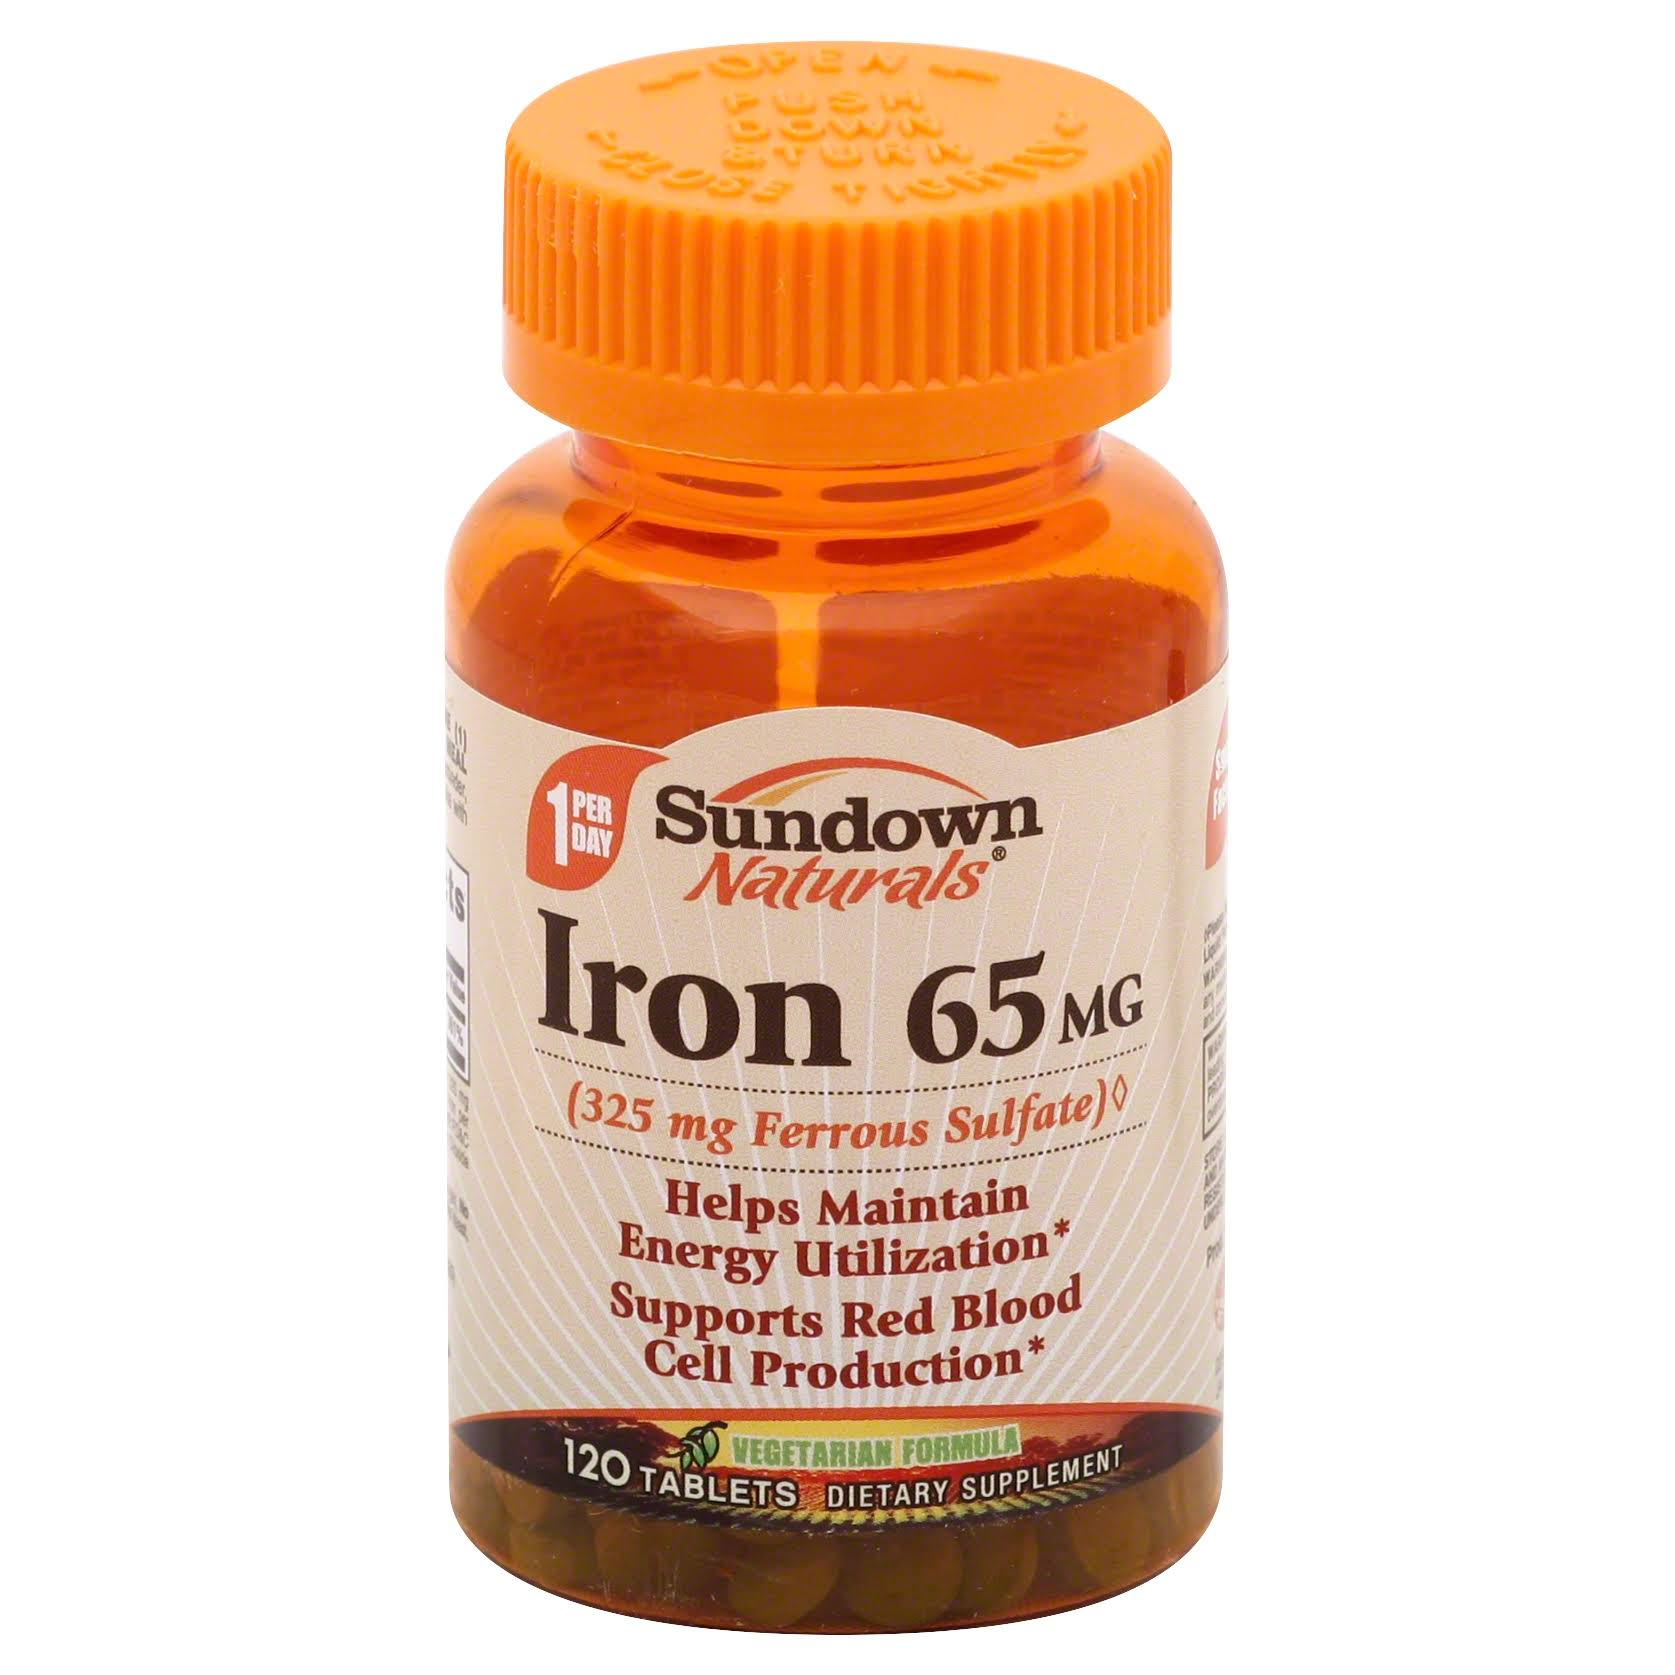 Sundown Naturals Iron Ferrous Sulfate - 65 mg, 120 tablets